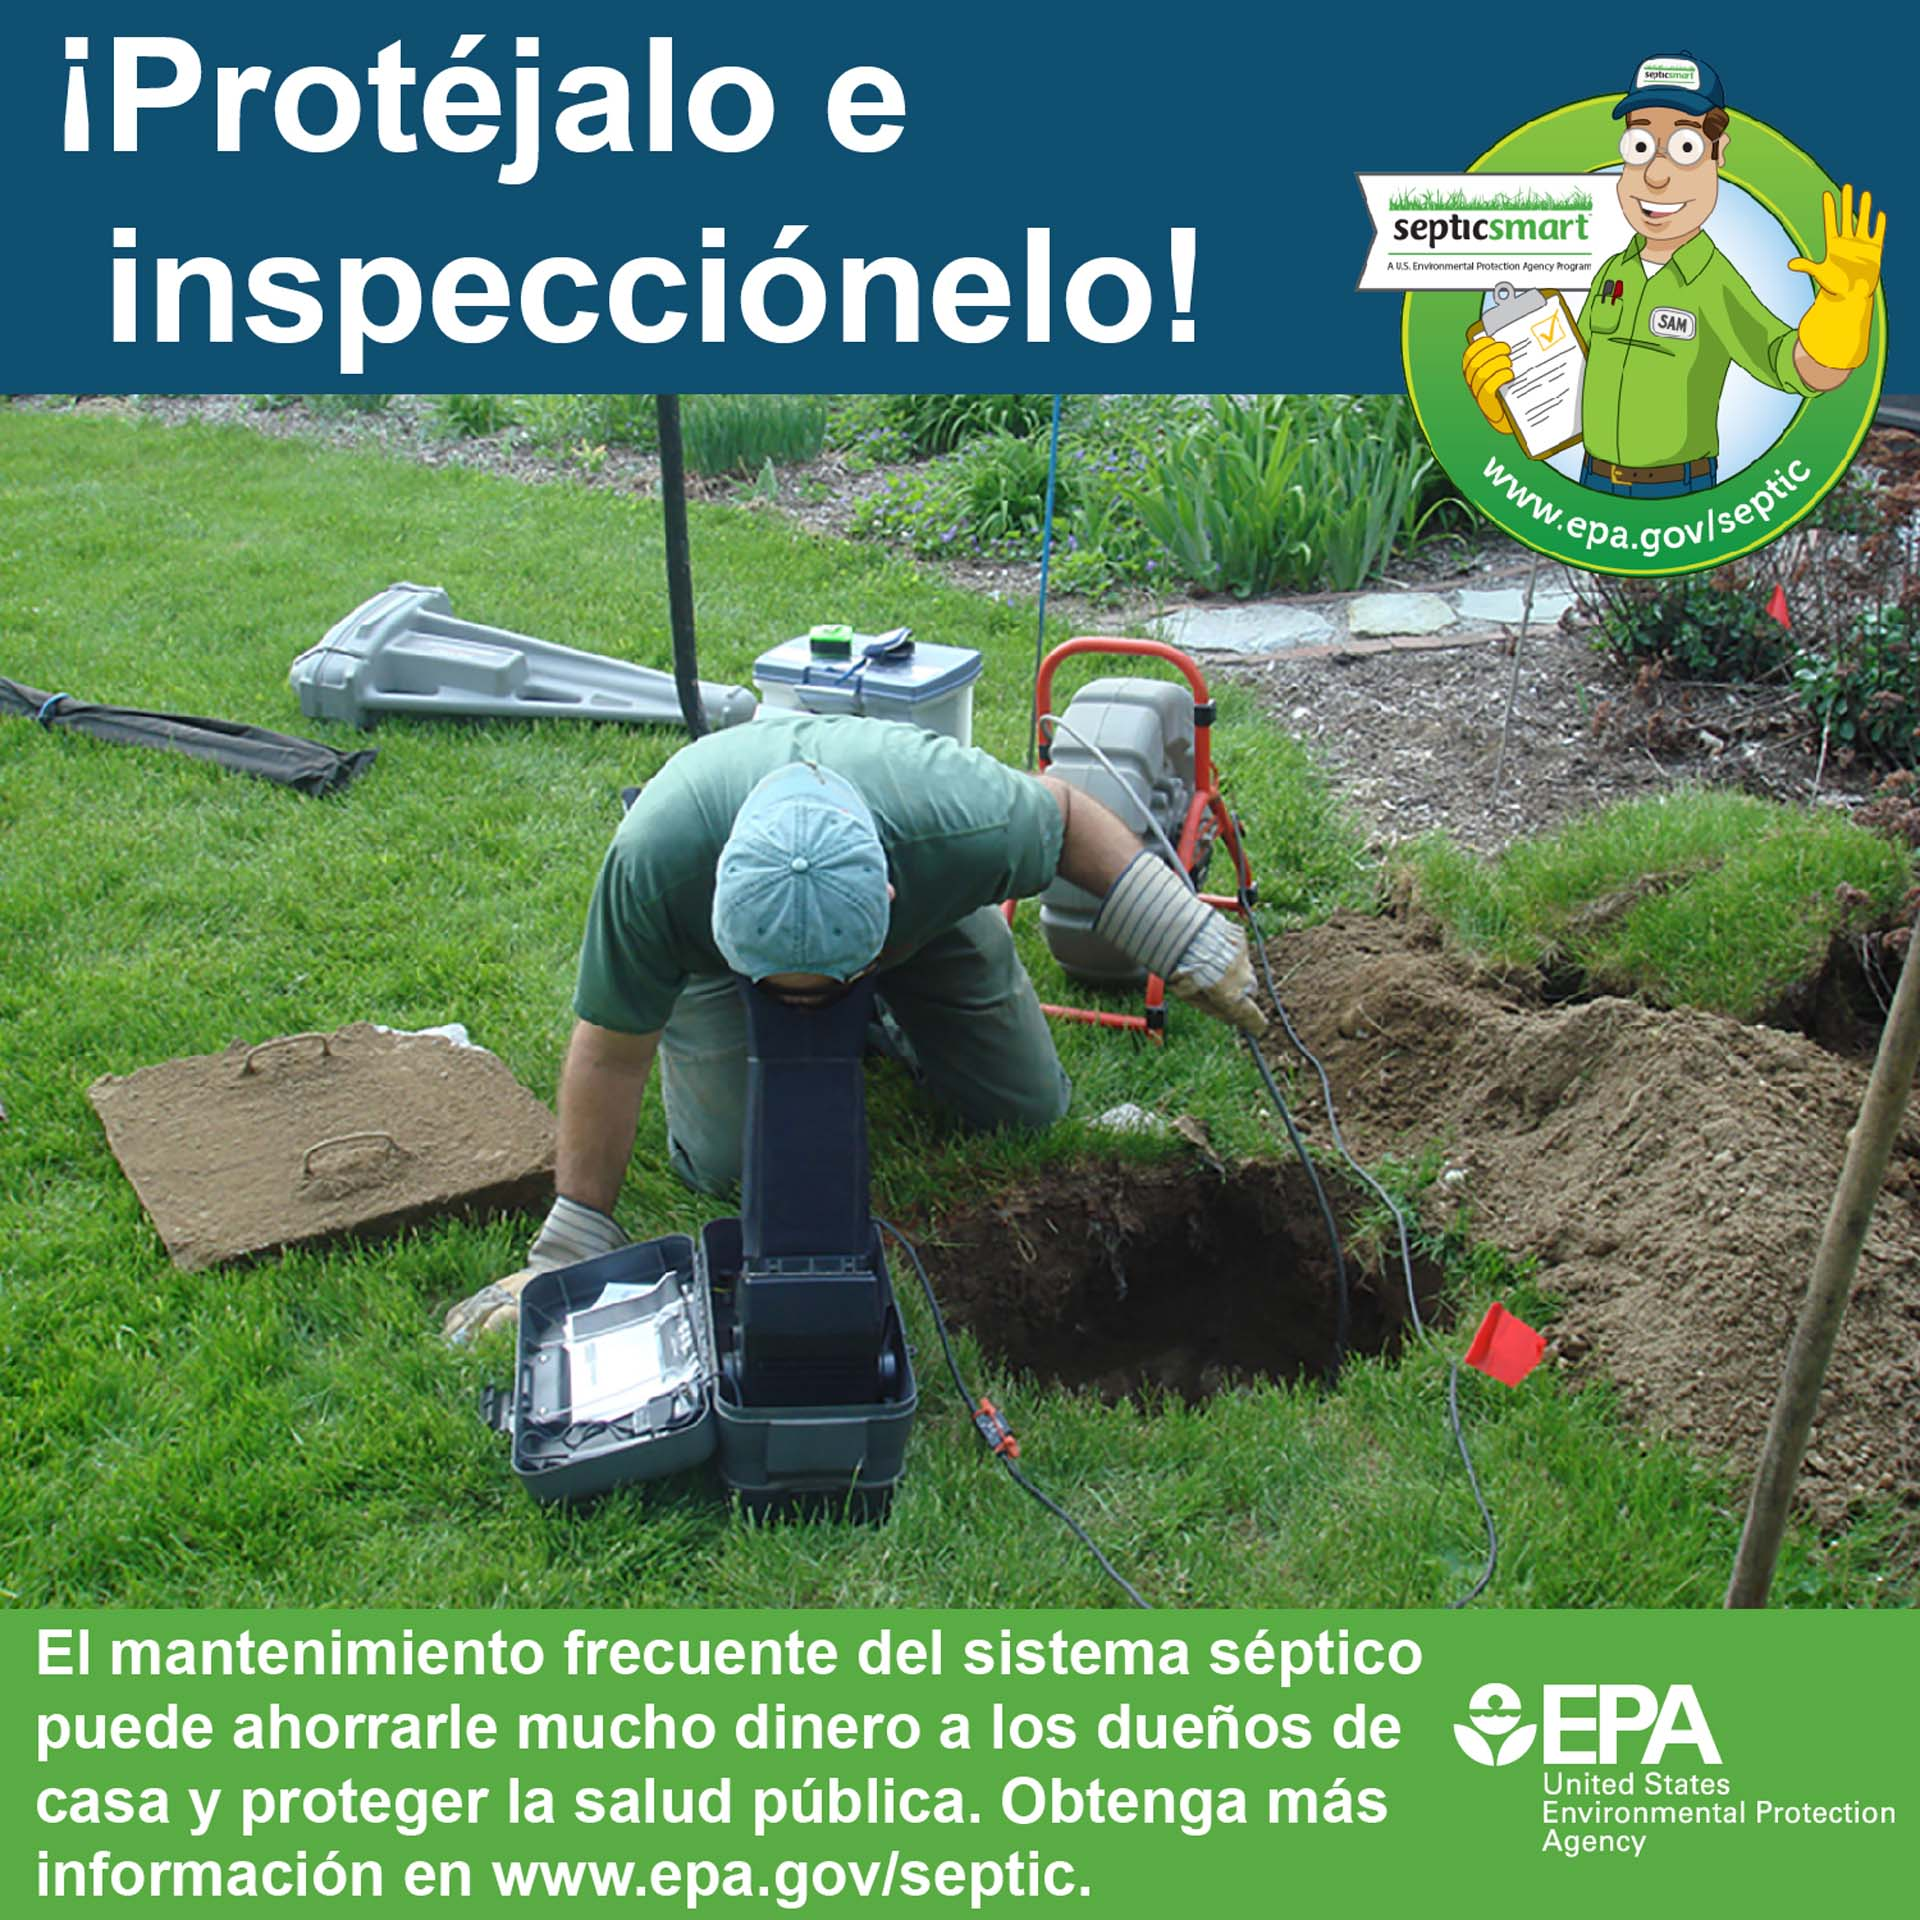 protect it and inspect it 2018 spanish 01